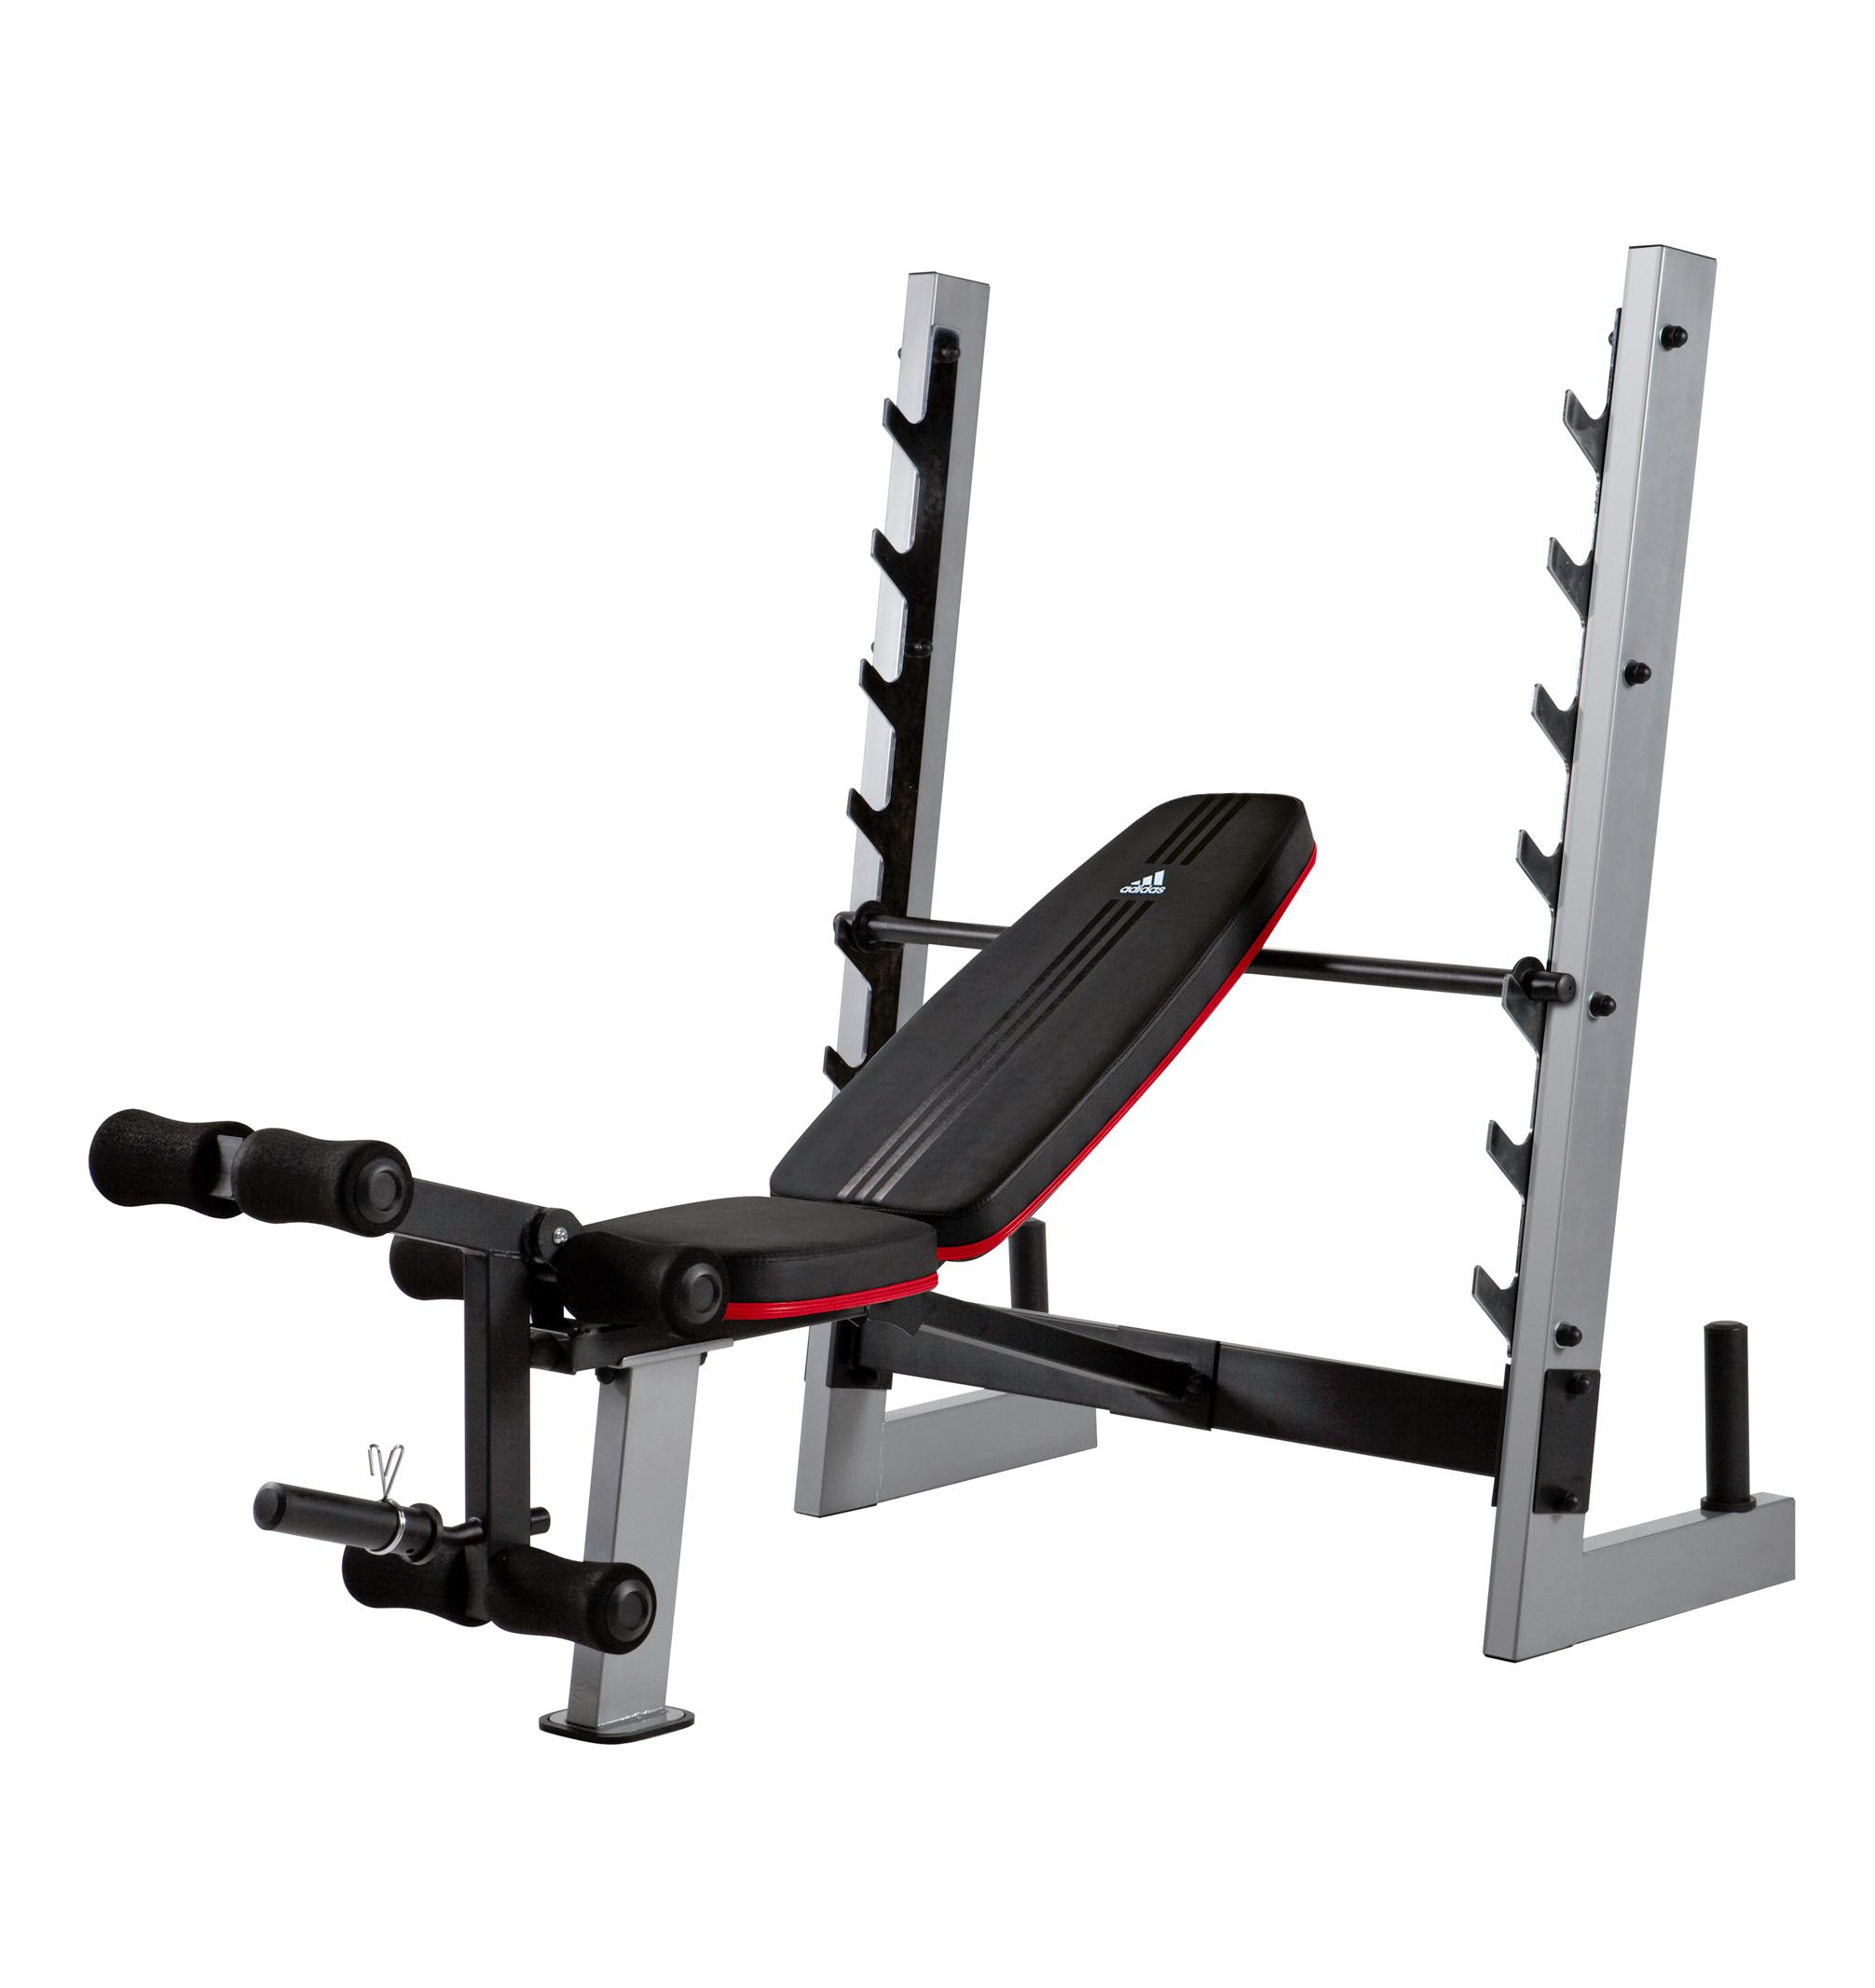 Adidas olympic weight bench standard weight benches sports outdoors Weight bench and weights